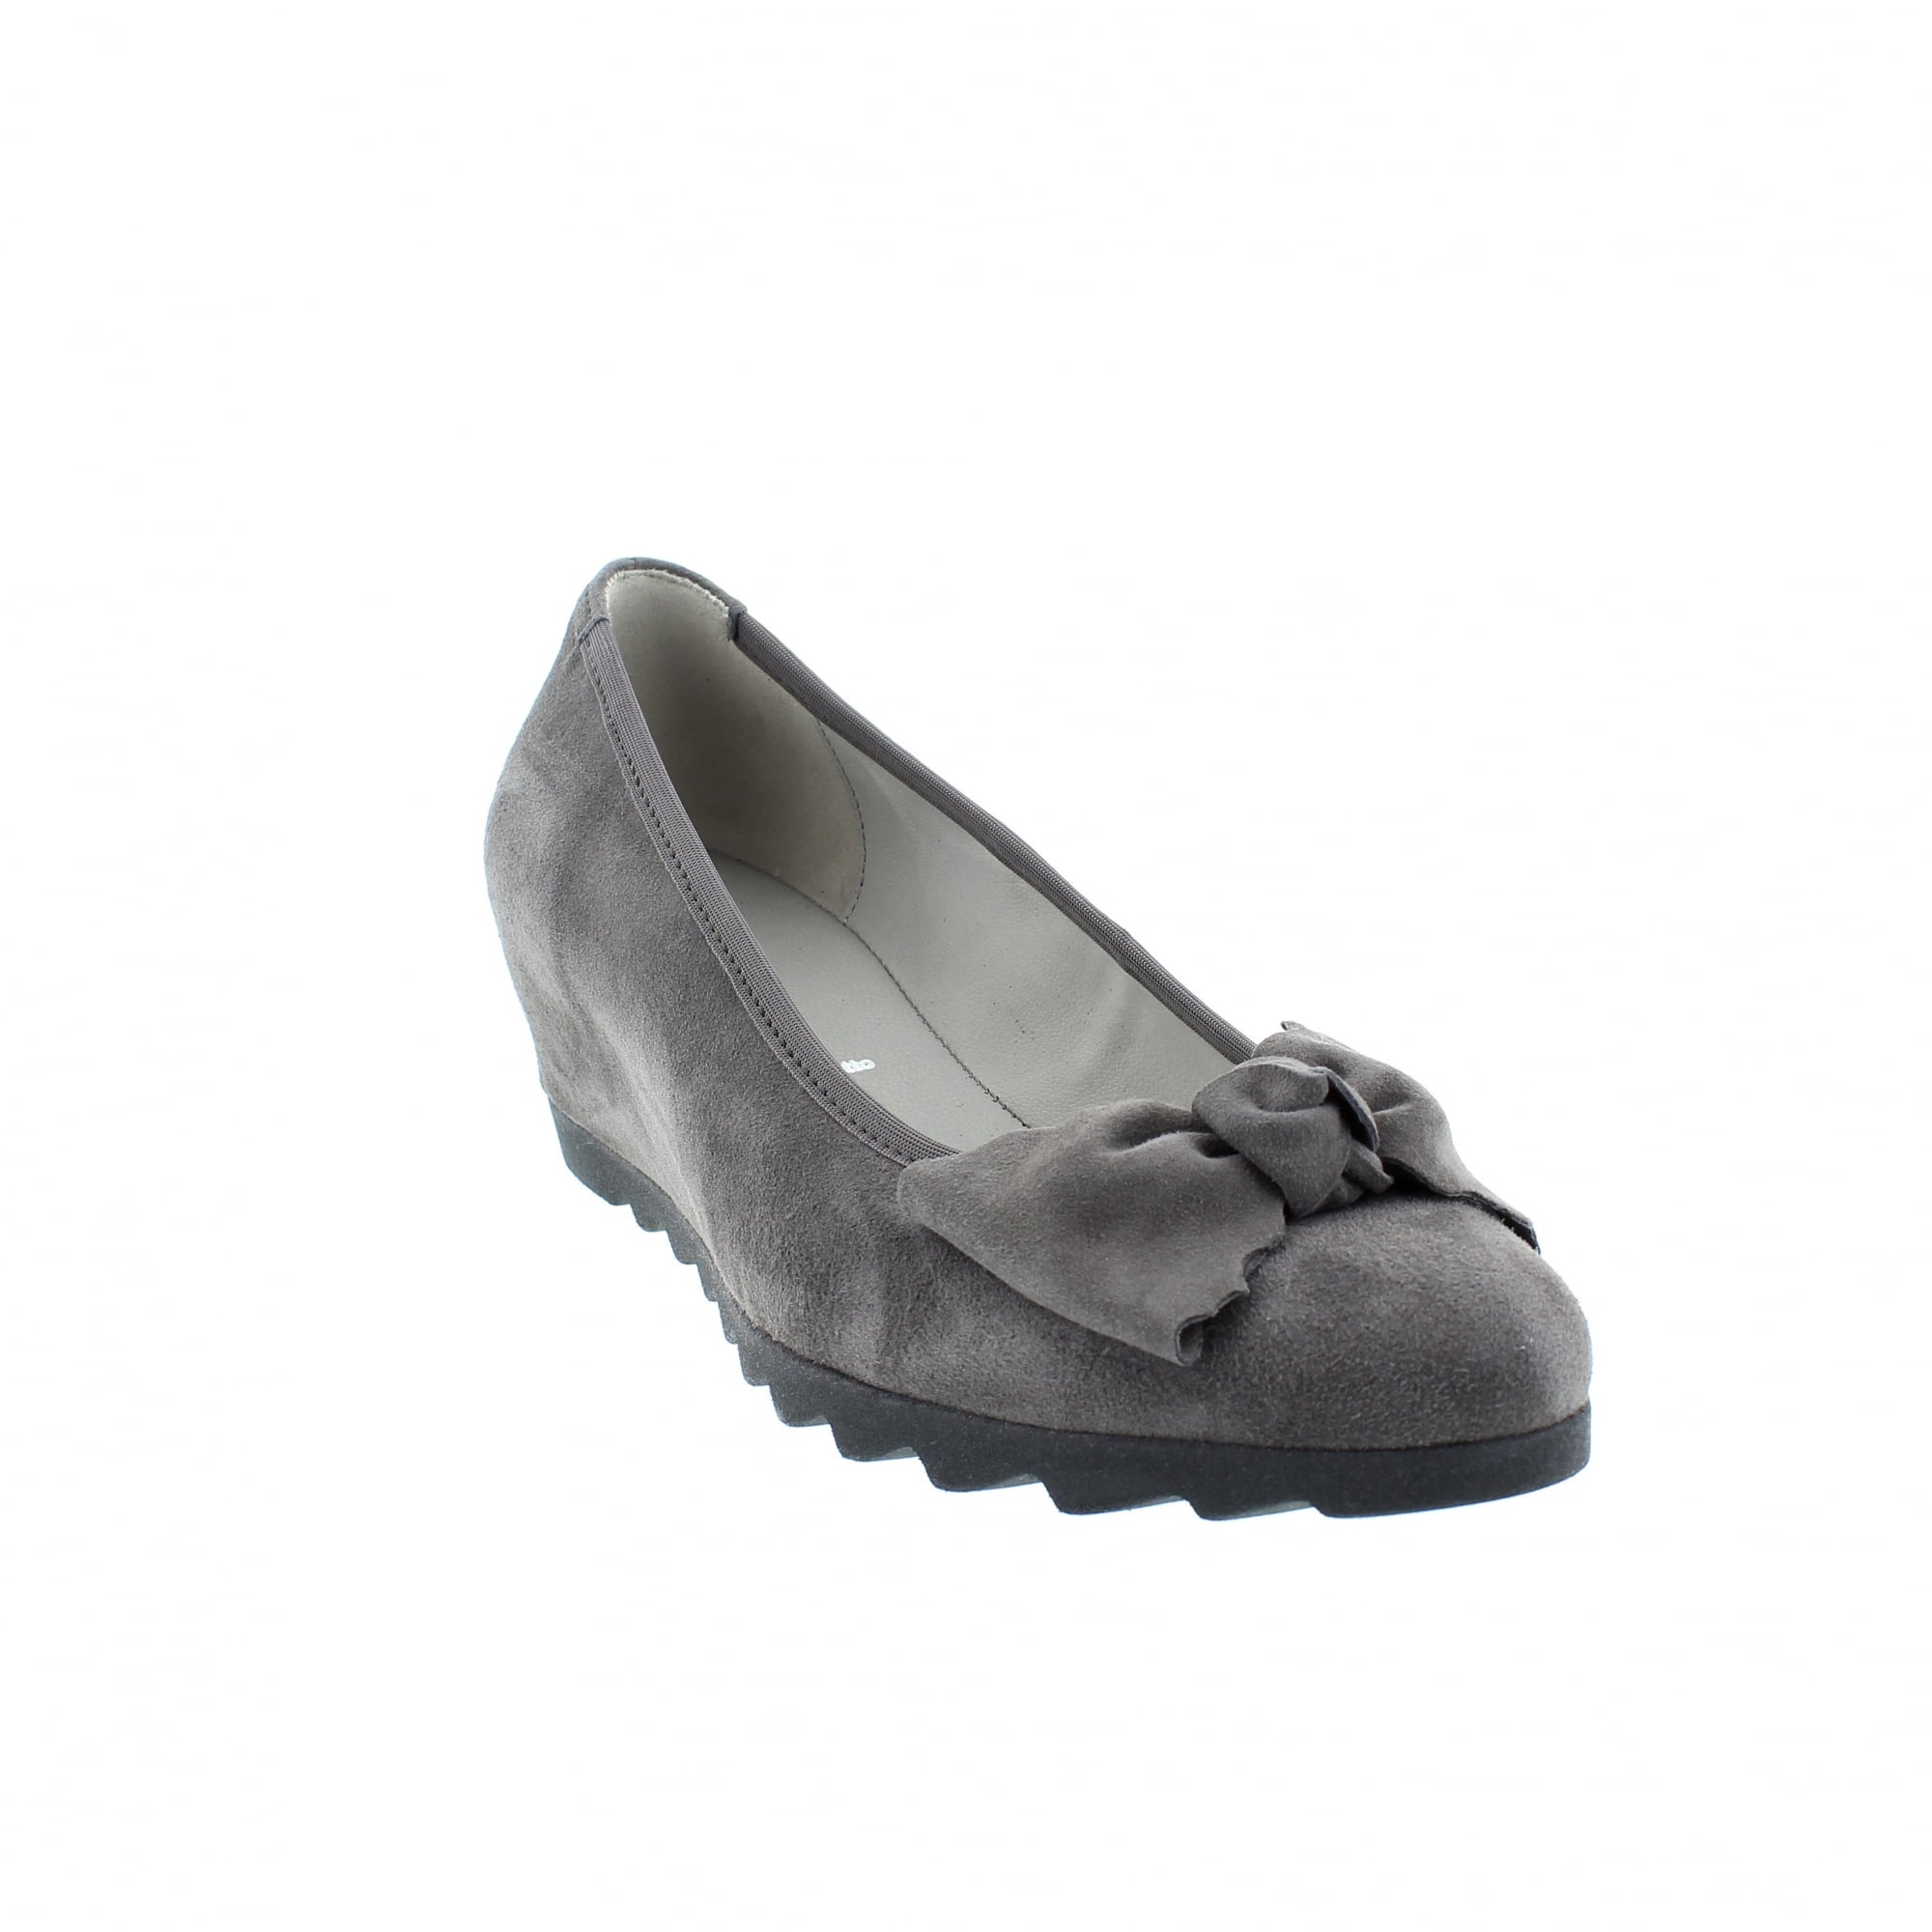 b290f70fba Gabor Gable 75-321-19 Grey Suede Womens Wedge Pumps | Rogerson Shoes